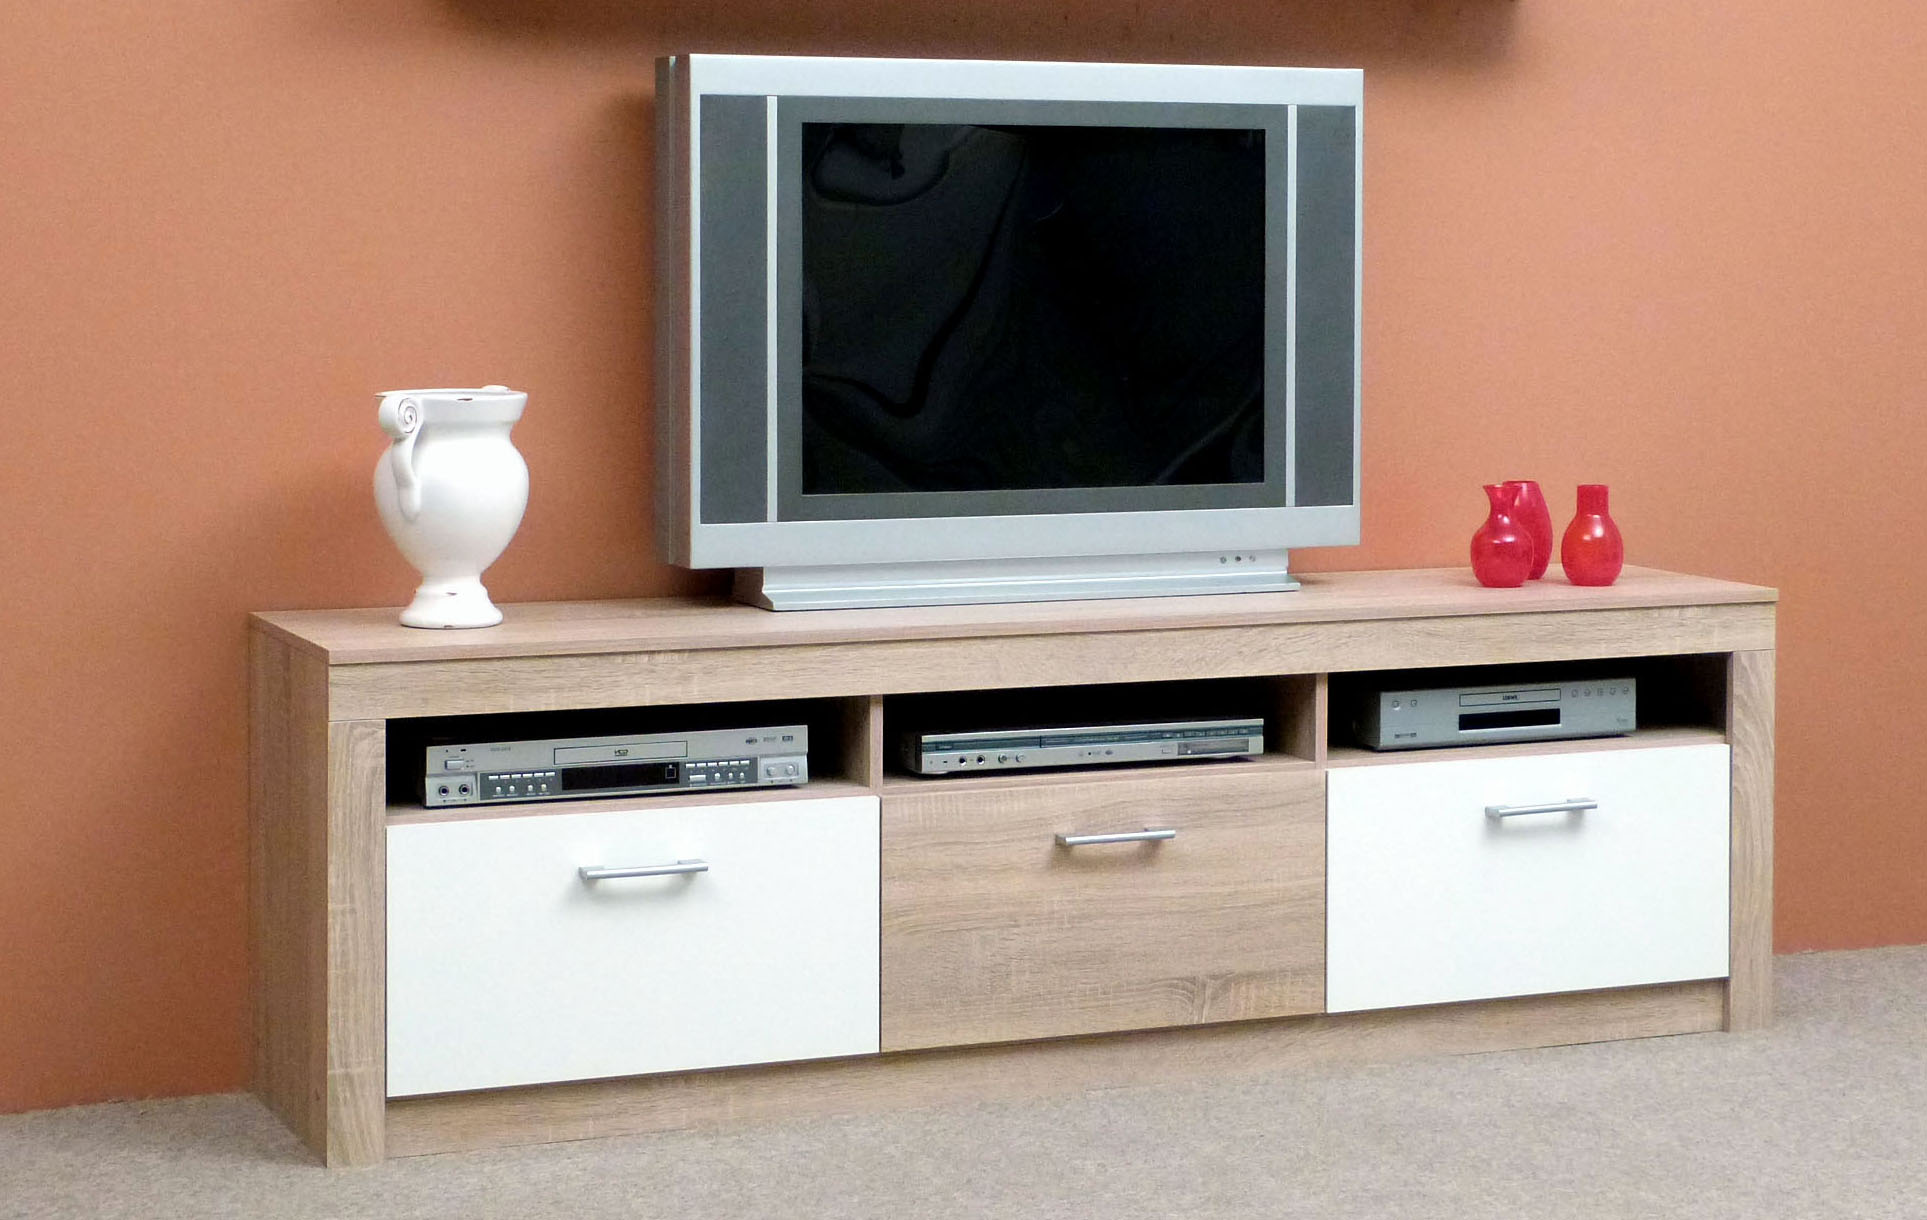 wohnzimmerset tv lowboard unterschrank wandregal h ngeregal sonoma eiche weiss ebay. Black Bedroom Furniture Sets. Home Design Ideas